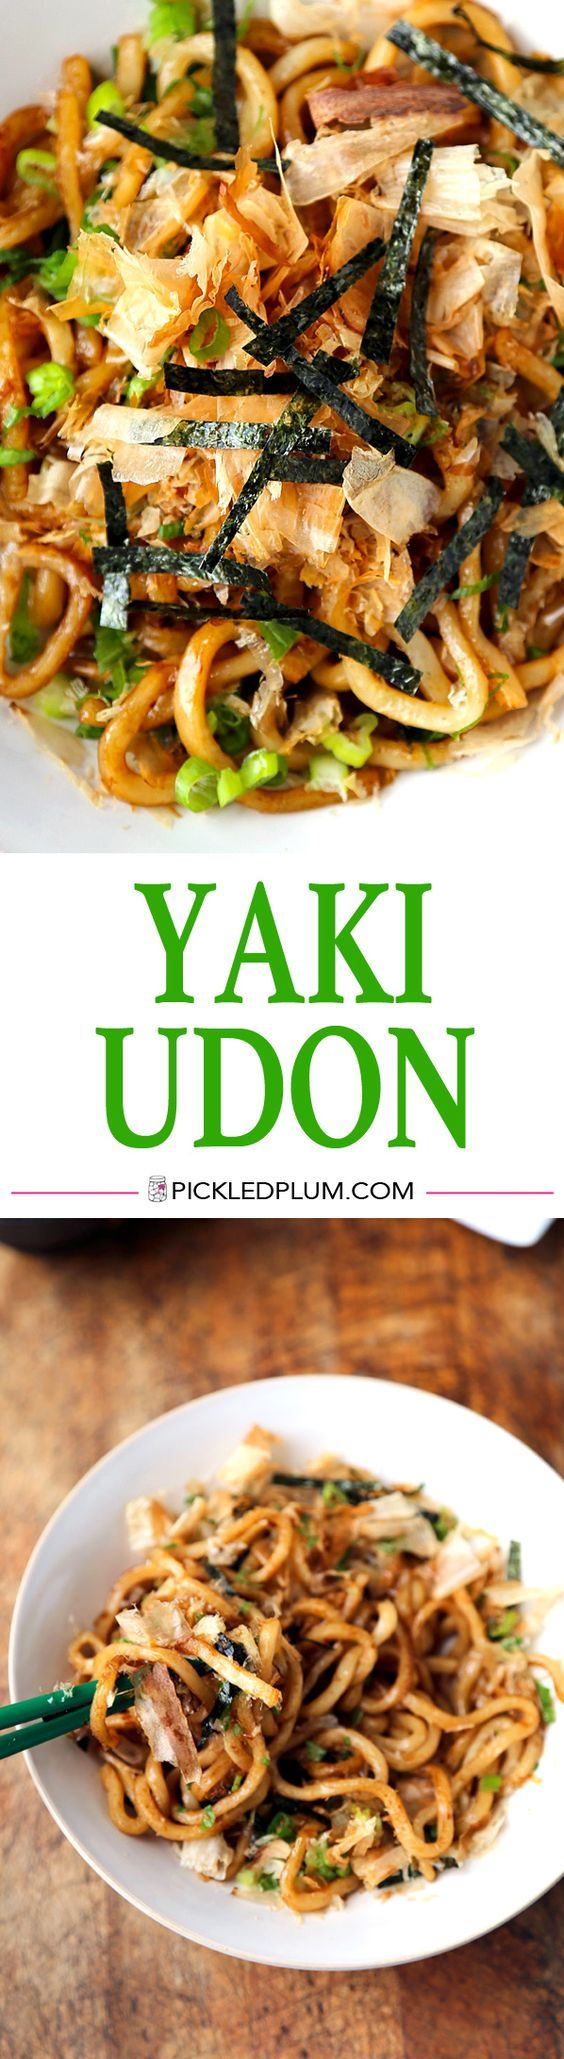 10 Minute Yaki Udon with Dashi Butter Recipe - quick stir fried udon noodles with soy sauce, dashi, butter and fresh scallions. The best! http://www.pickledplum.com/yaki-udon-butter-recipe/